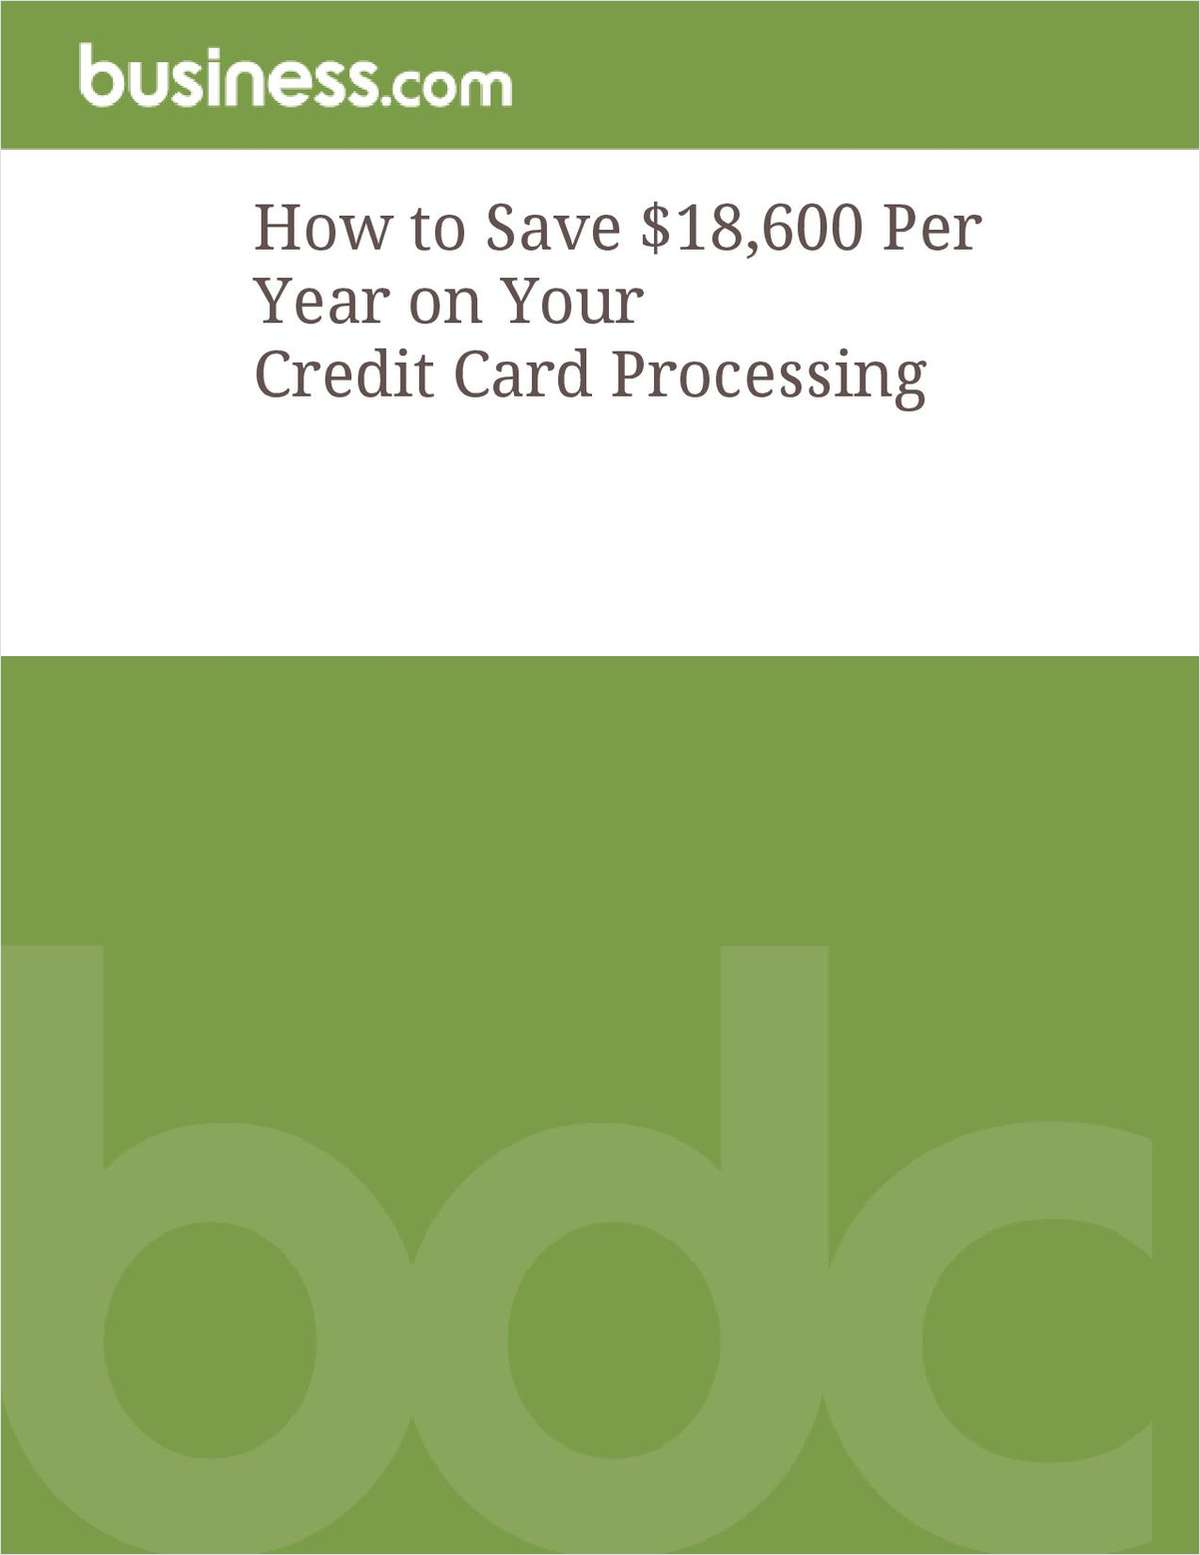 How to Save $18,600 Per Year on Your Credit Card Processing